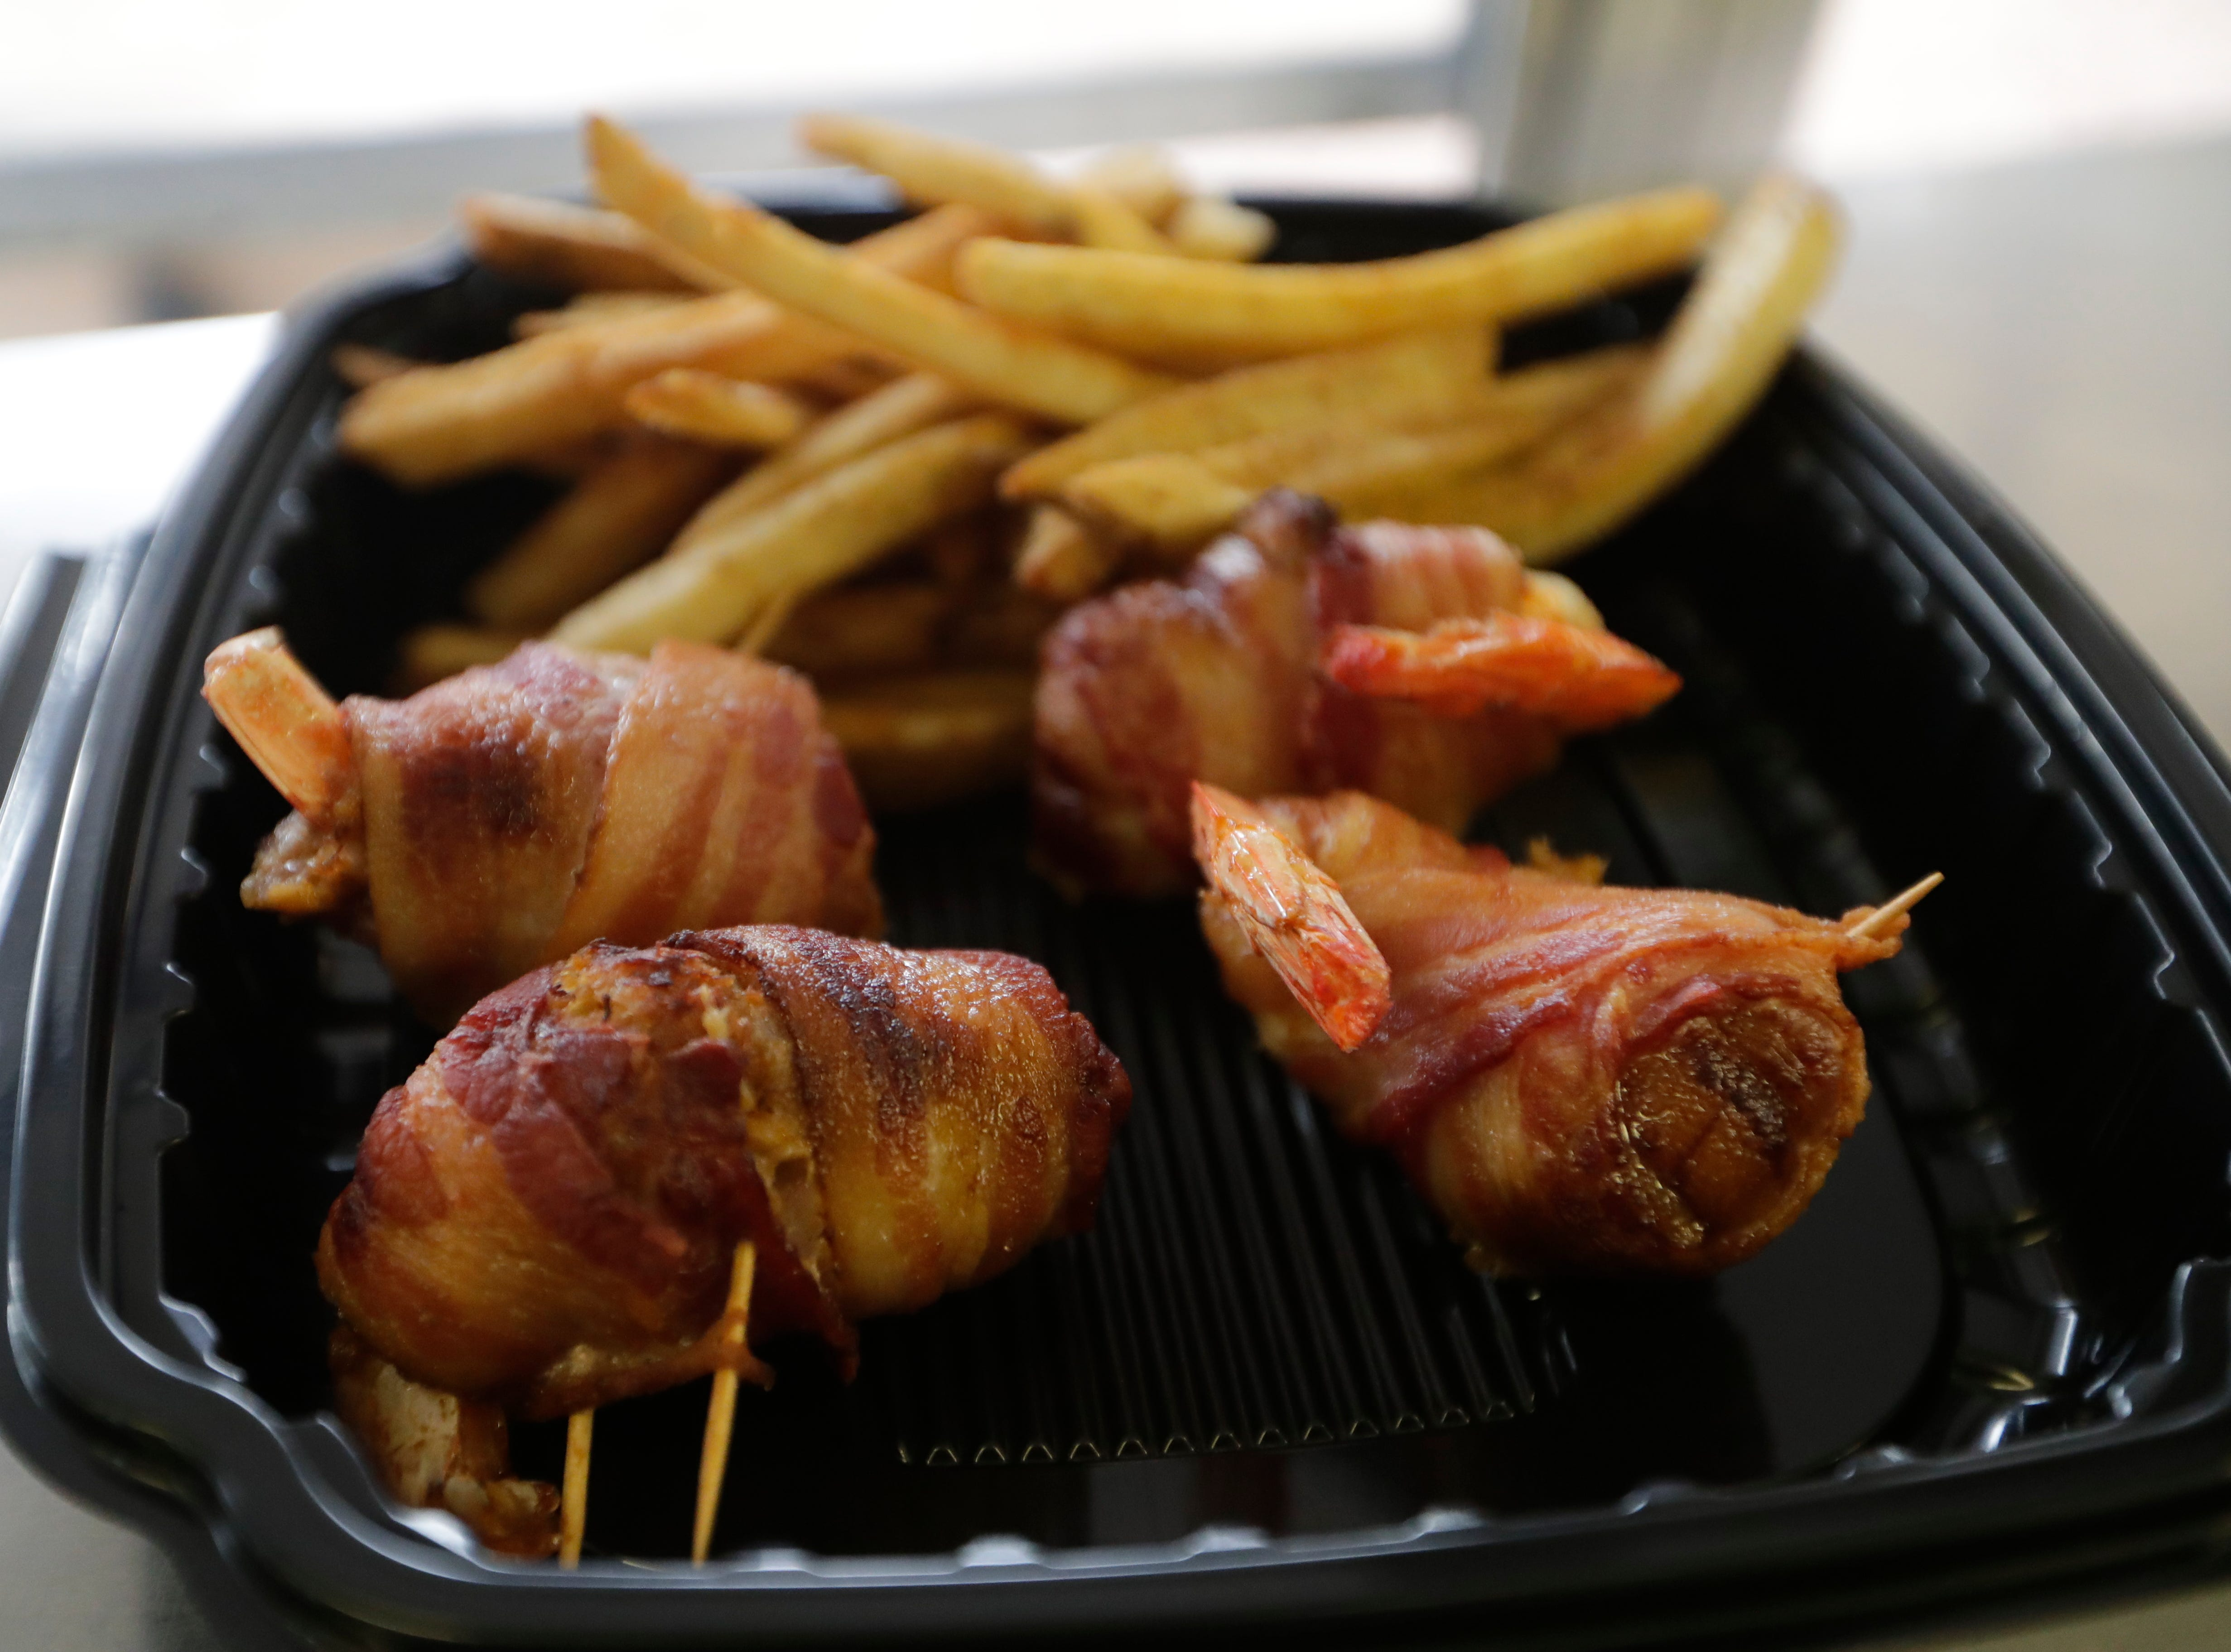 Fresh out of the fryer are bacon wrapped shrimp stuffed with crab, a family recipe, ready to be served to a customer at the Spring Creek Restaurant food truck in Crawfordville, Fla., Friday, Feb. 1, 2019.